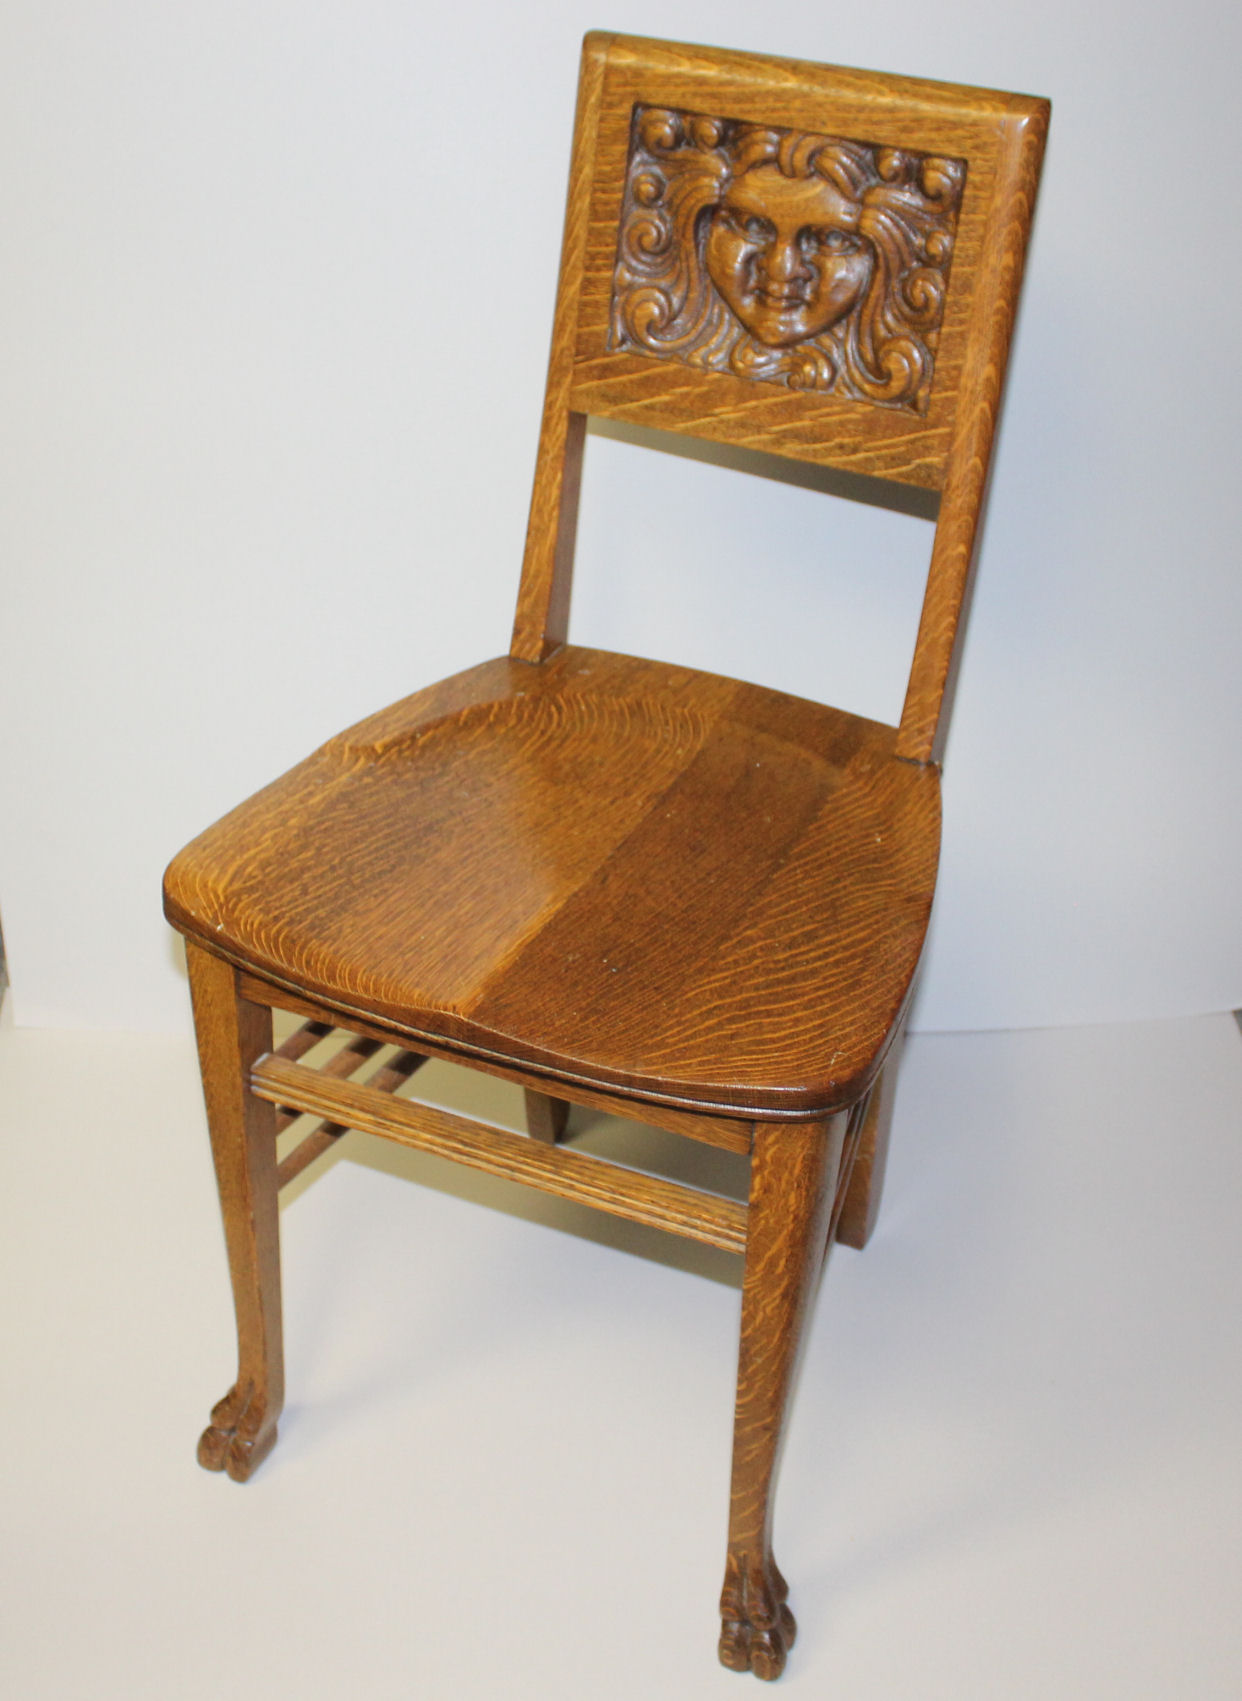 Oak Vanity Chair Bargain John 39s Antiques Antique Oak Vanity Or Small